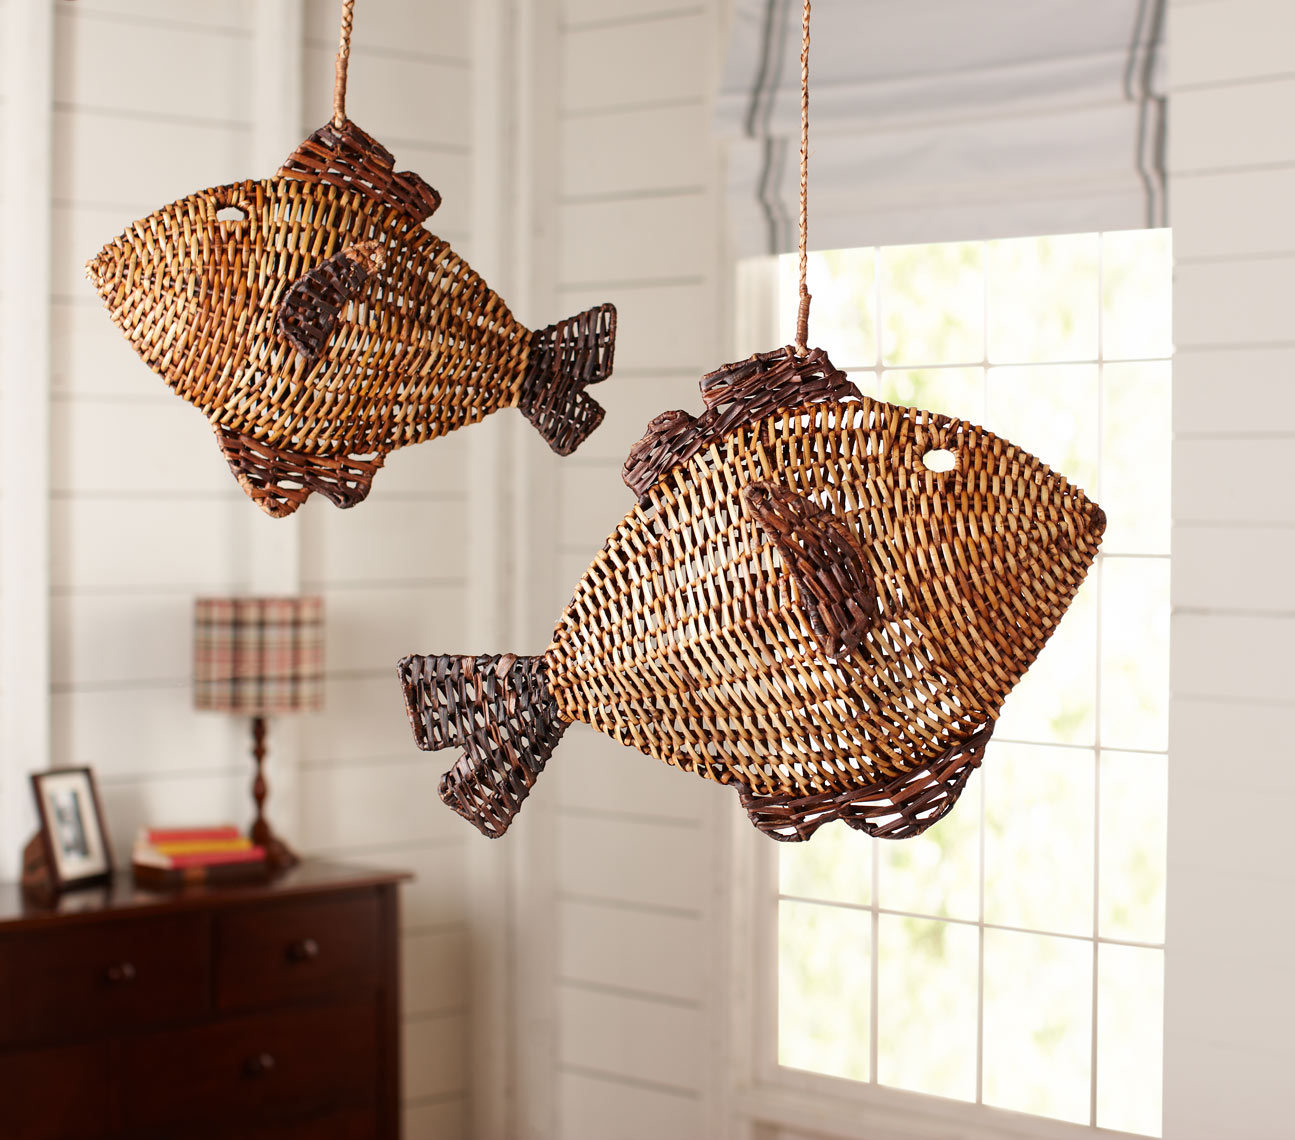 Woven_Fish_Hanging_Decor_037_R.jpg